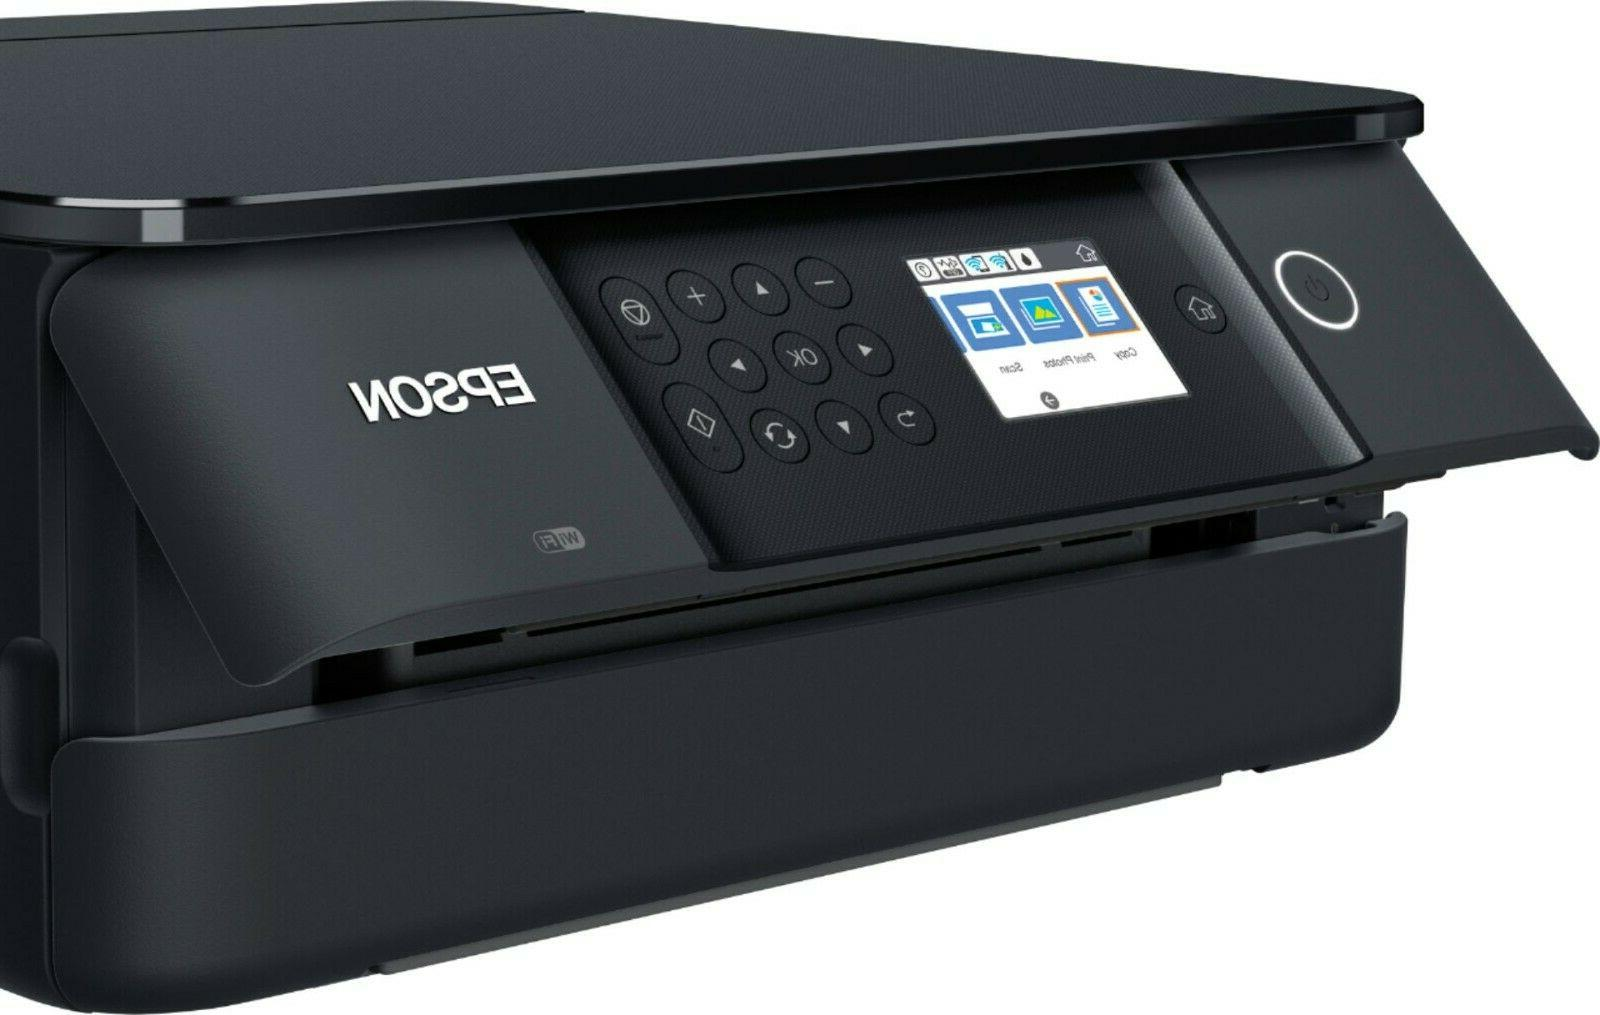 Epson Wireless Color Photo Printer Scanner